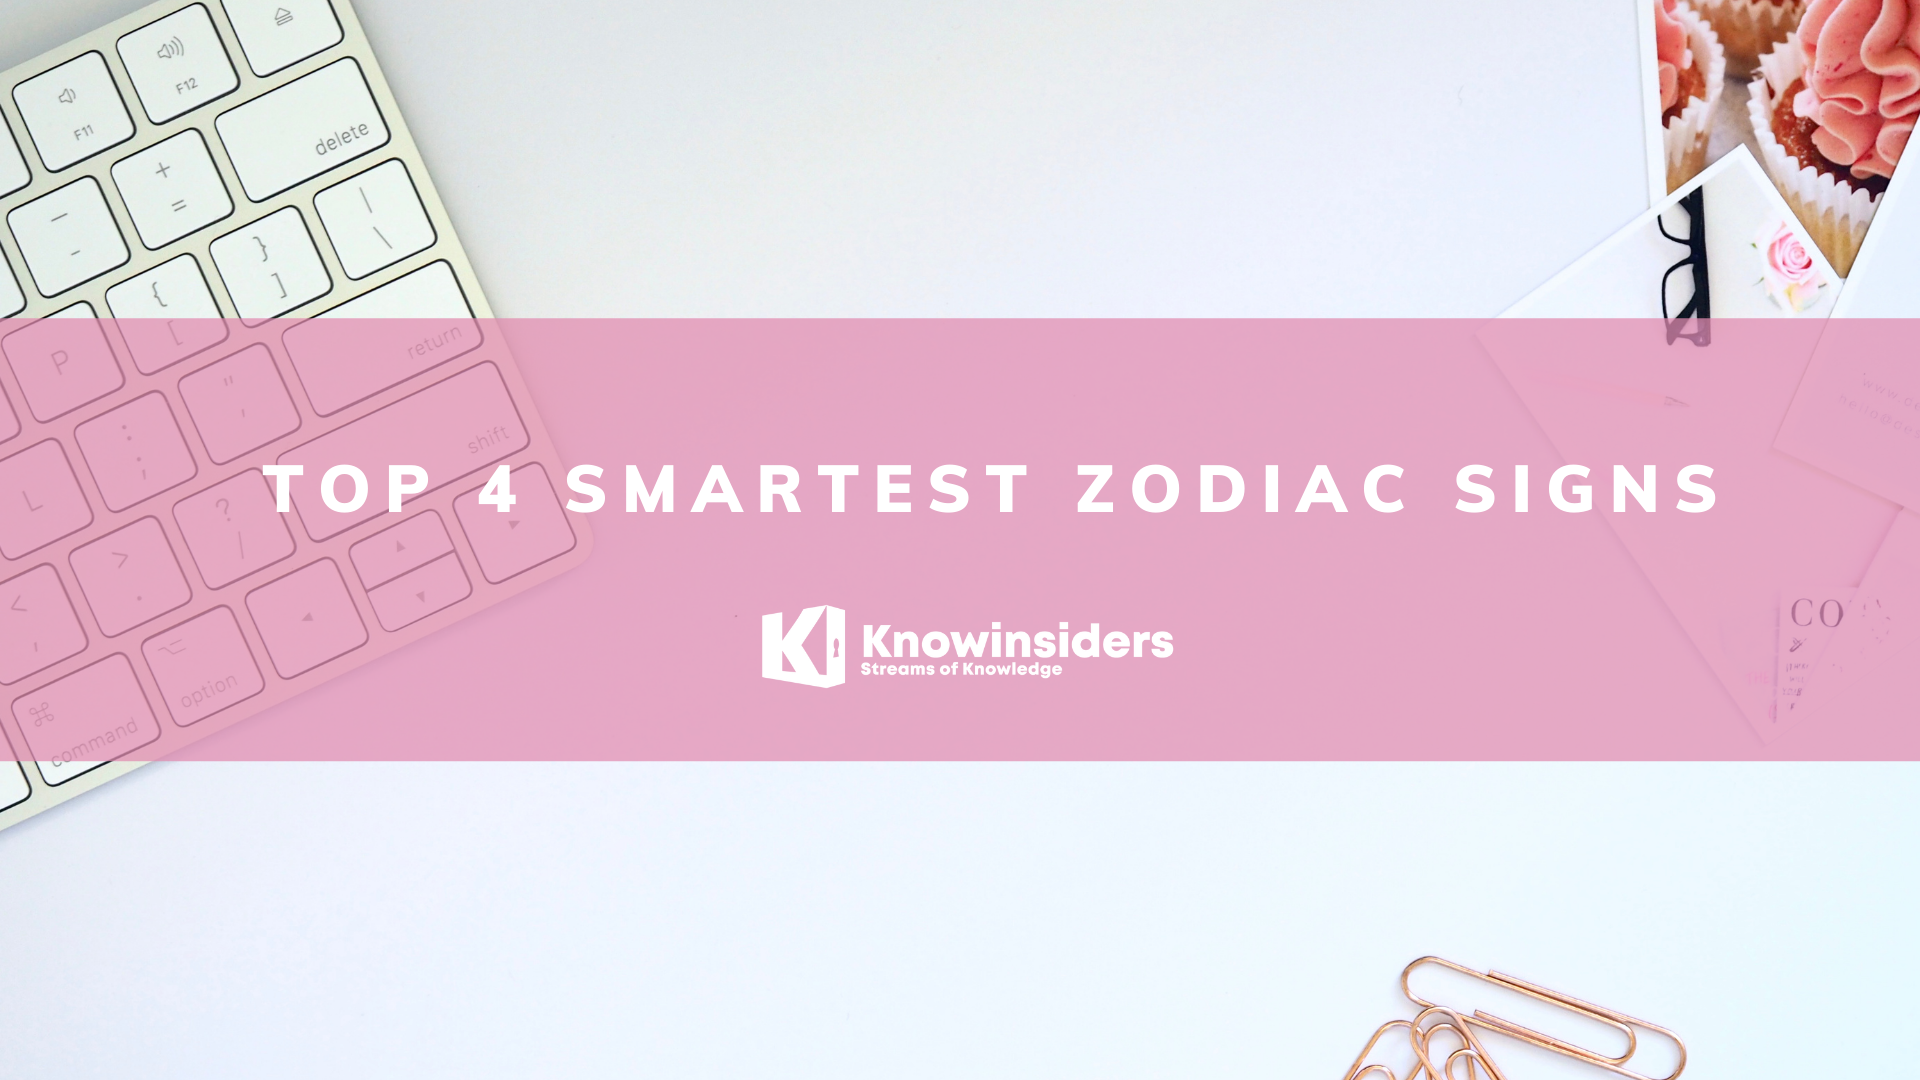 Top 4 Smartest Zodiac Signs According To Astrology